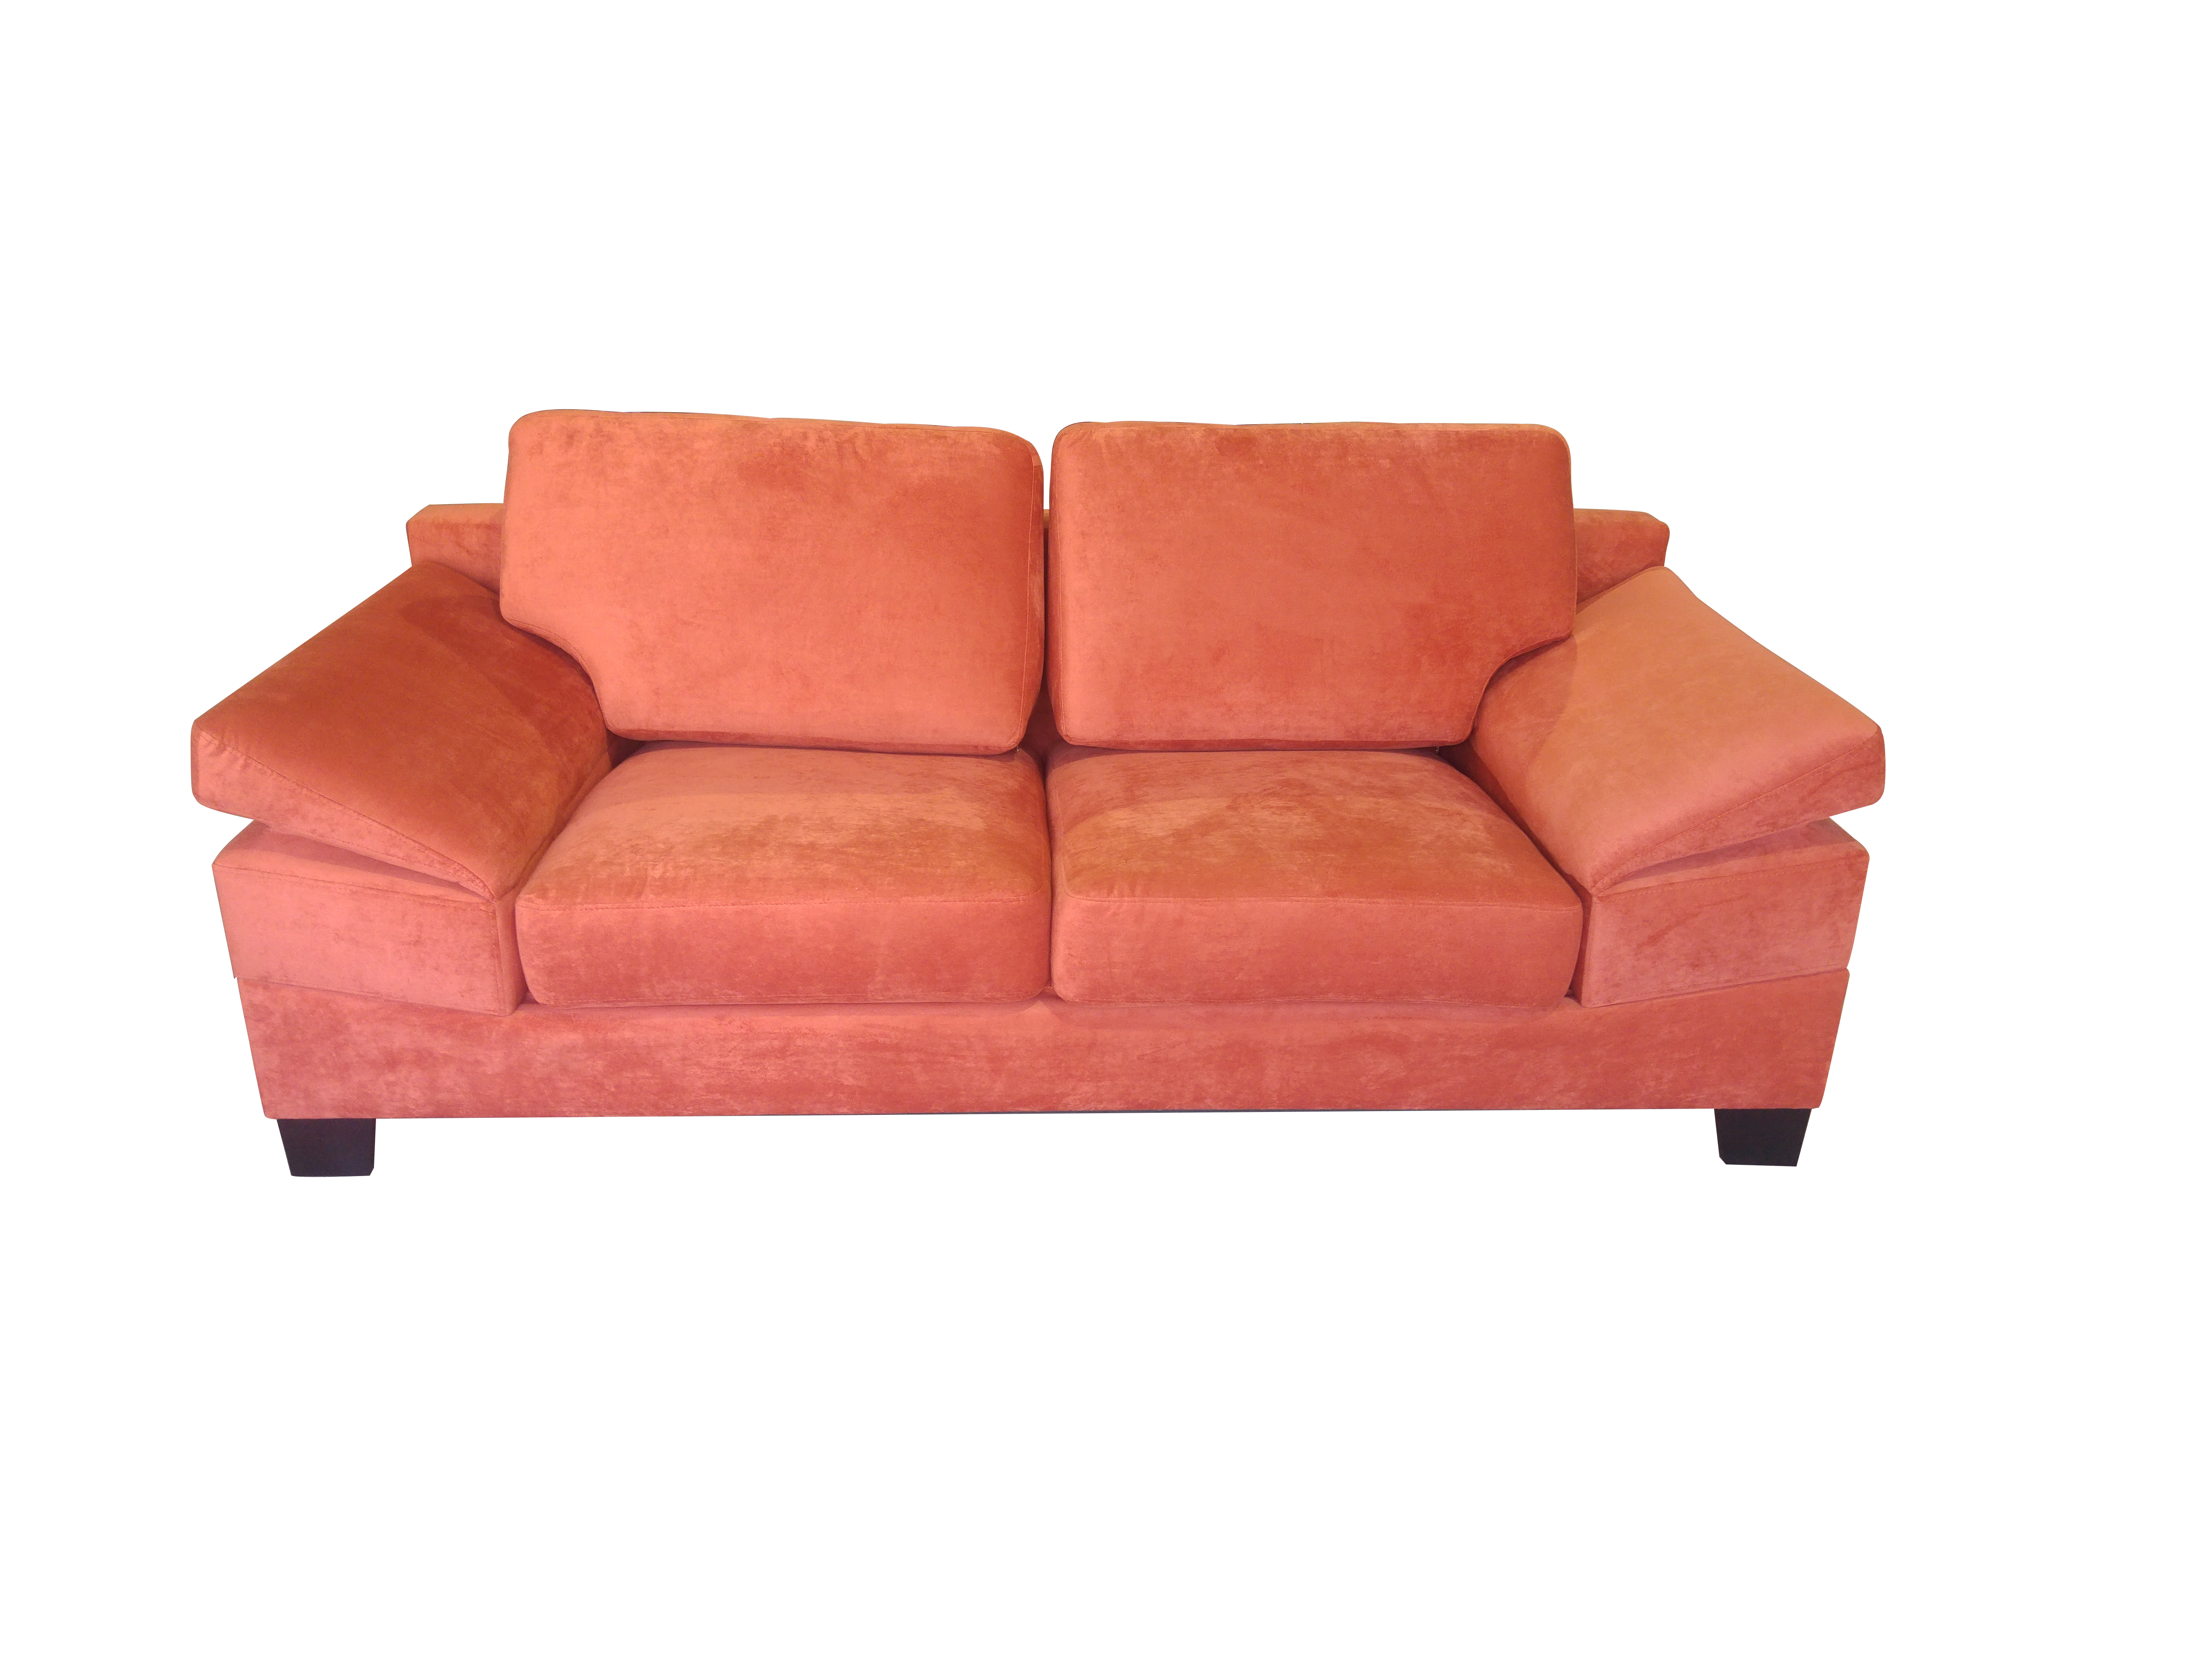 Clarkson Couch Gallery 3